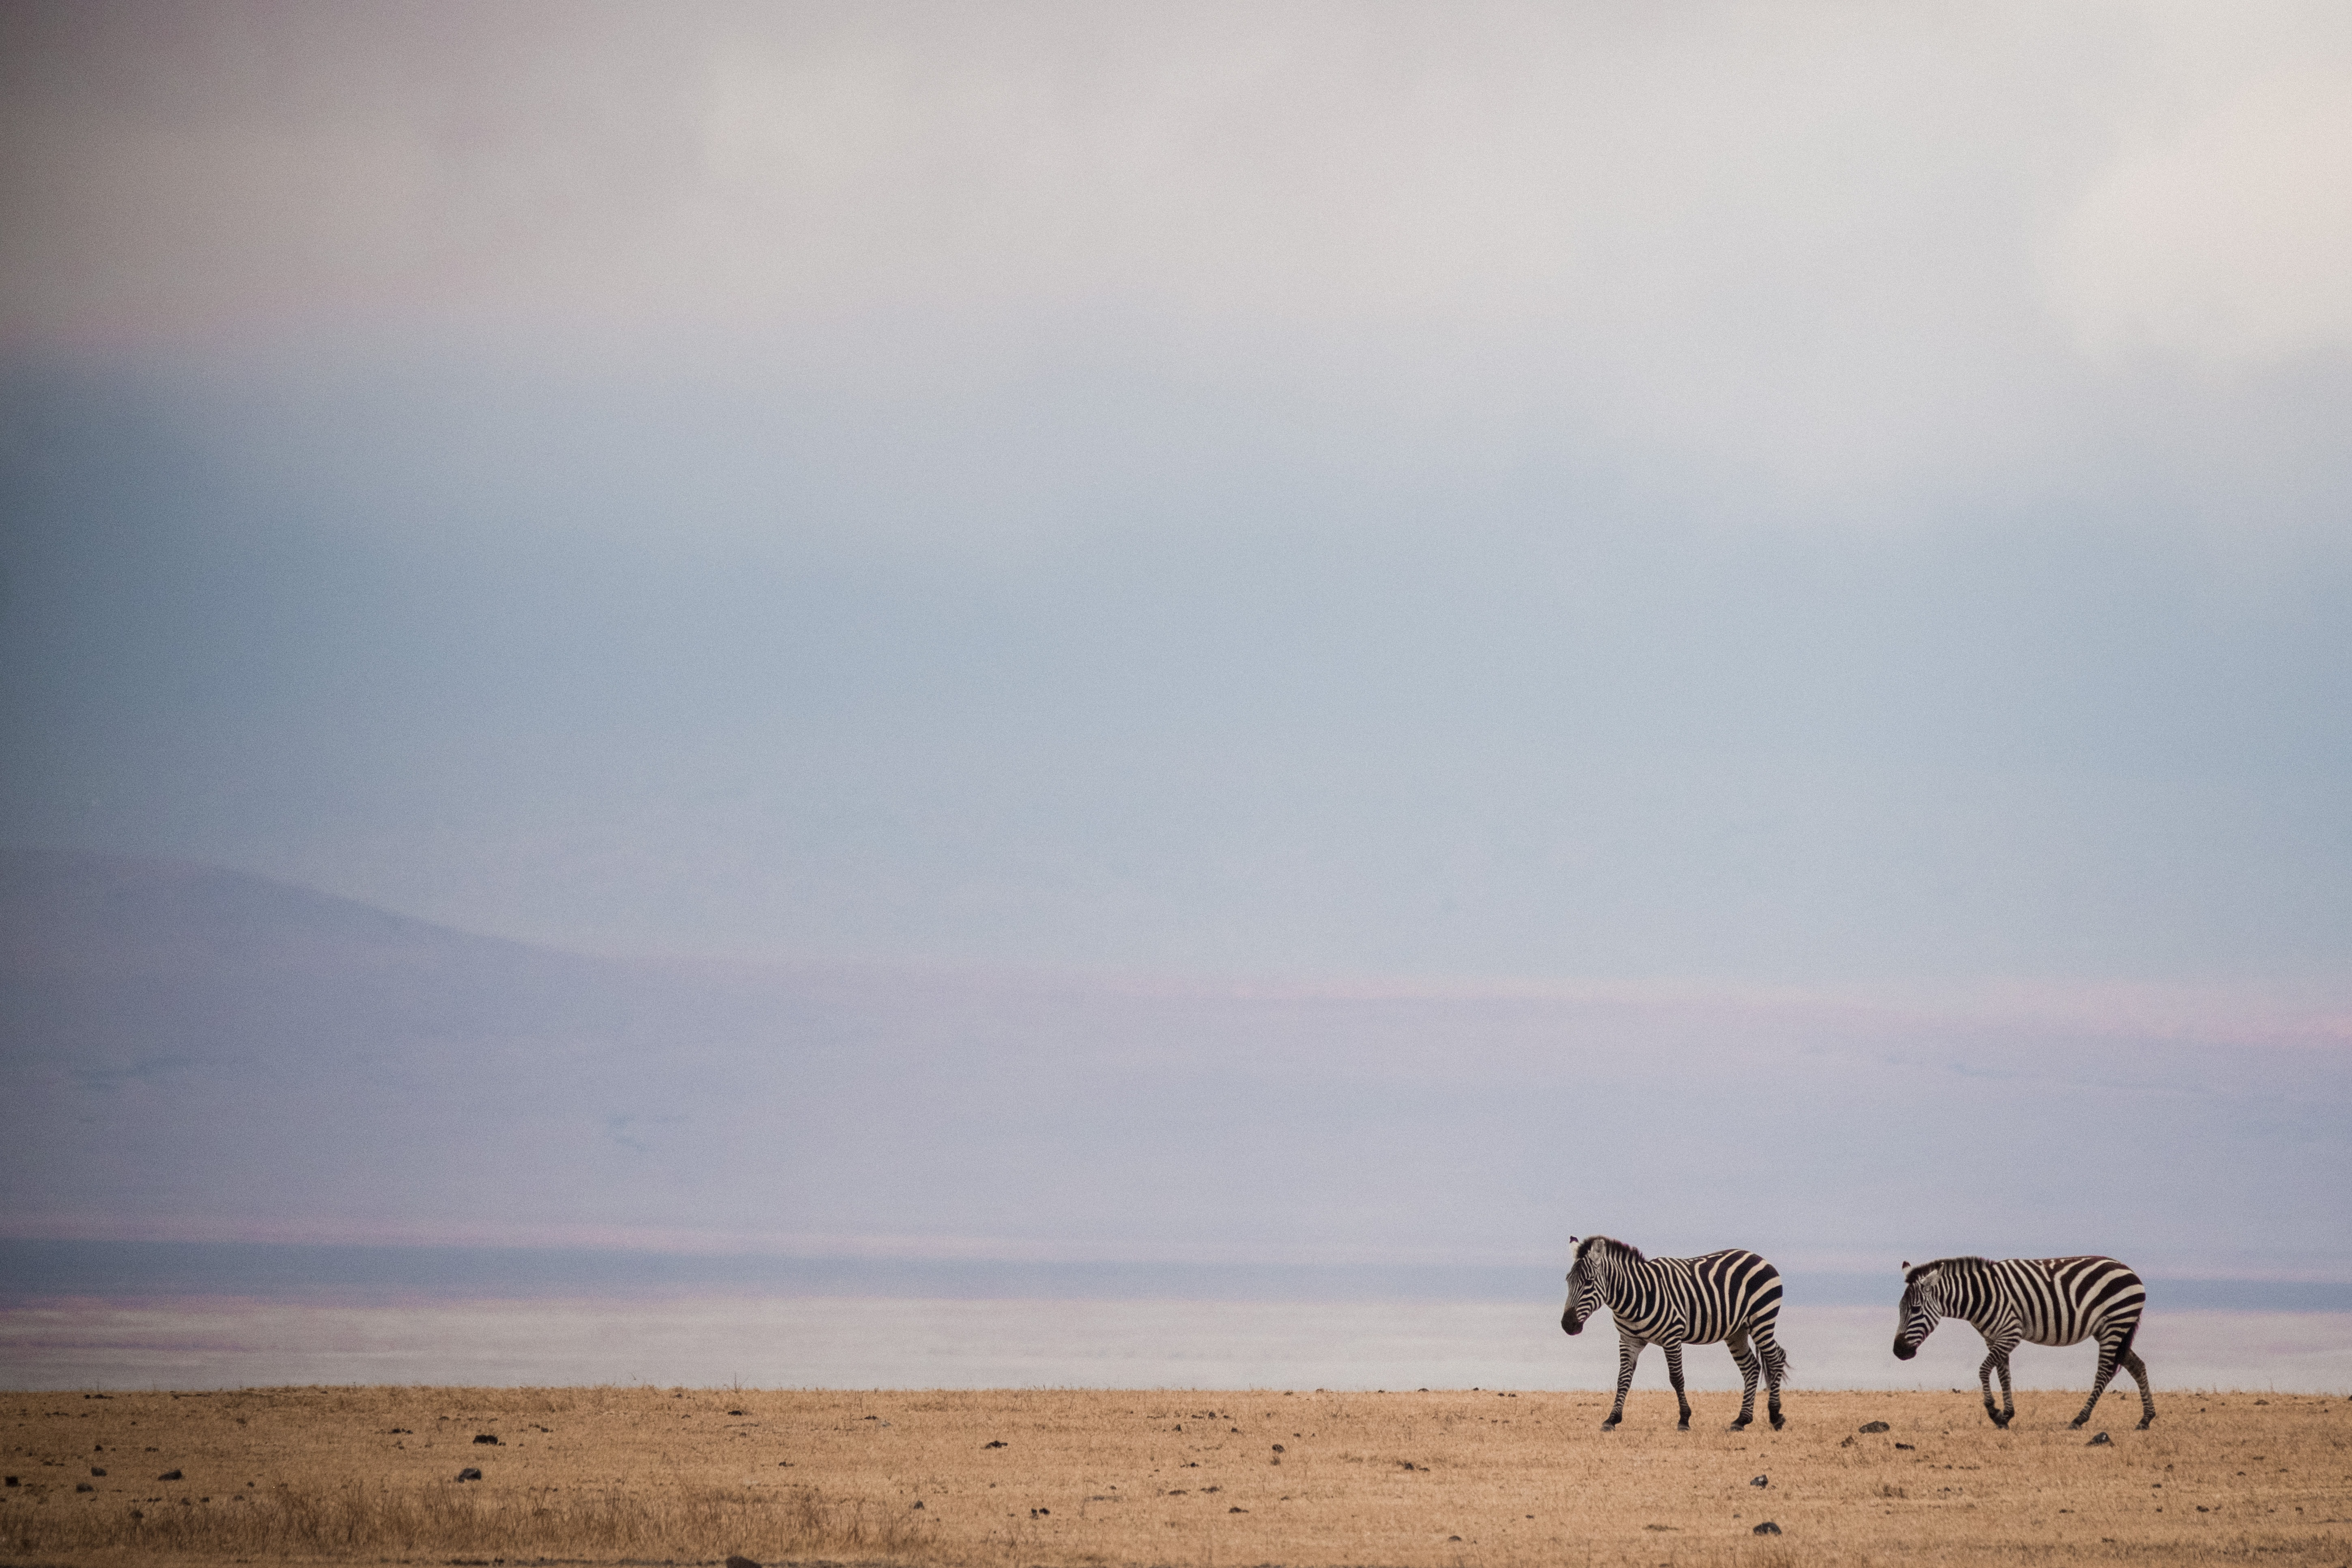 two zebras walking on brown sand